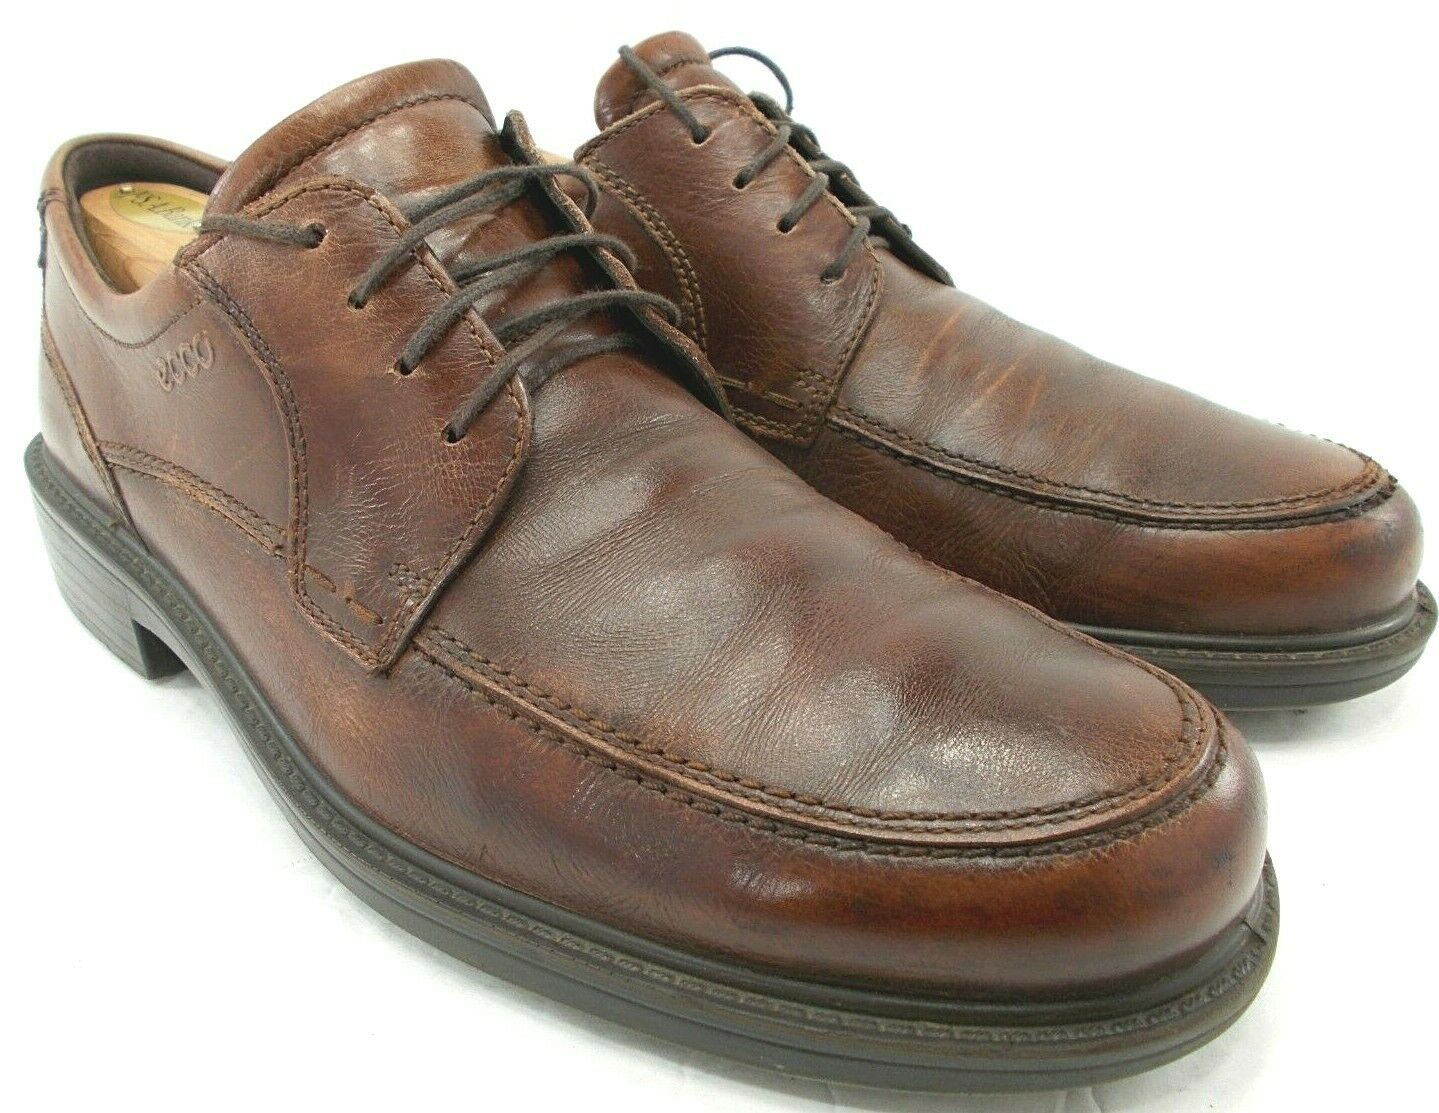 ECCO Mens Brown Leather Oxfords Lace Up Dress shoes Size US 10-10.5 A0320